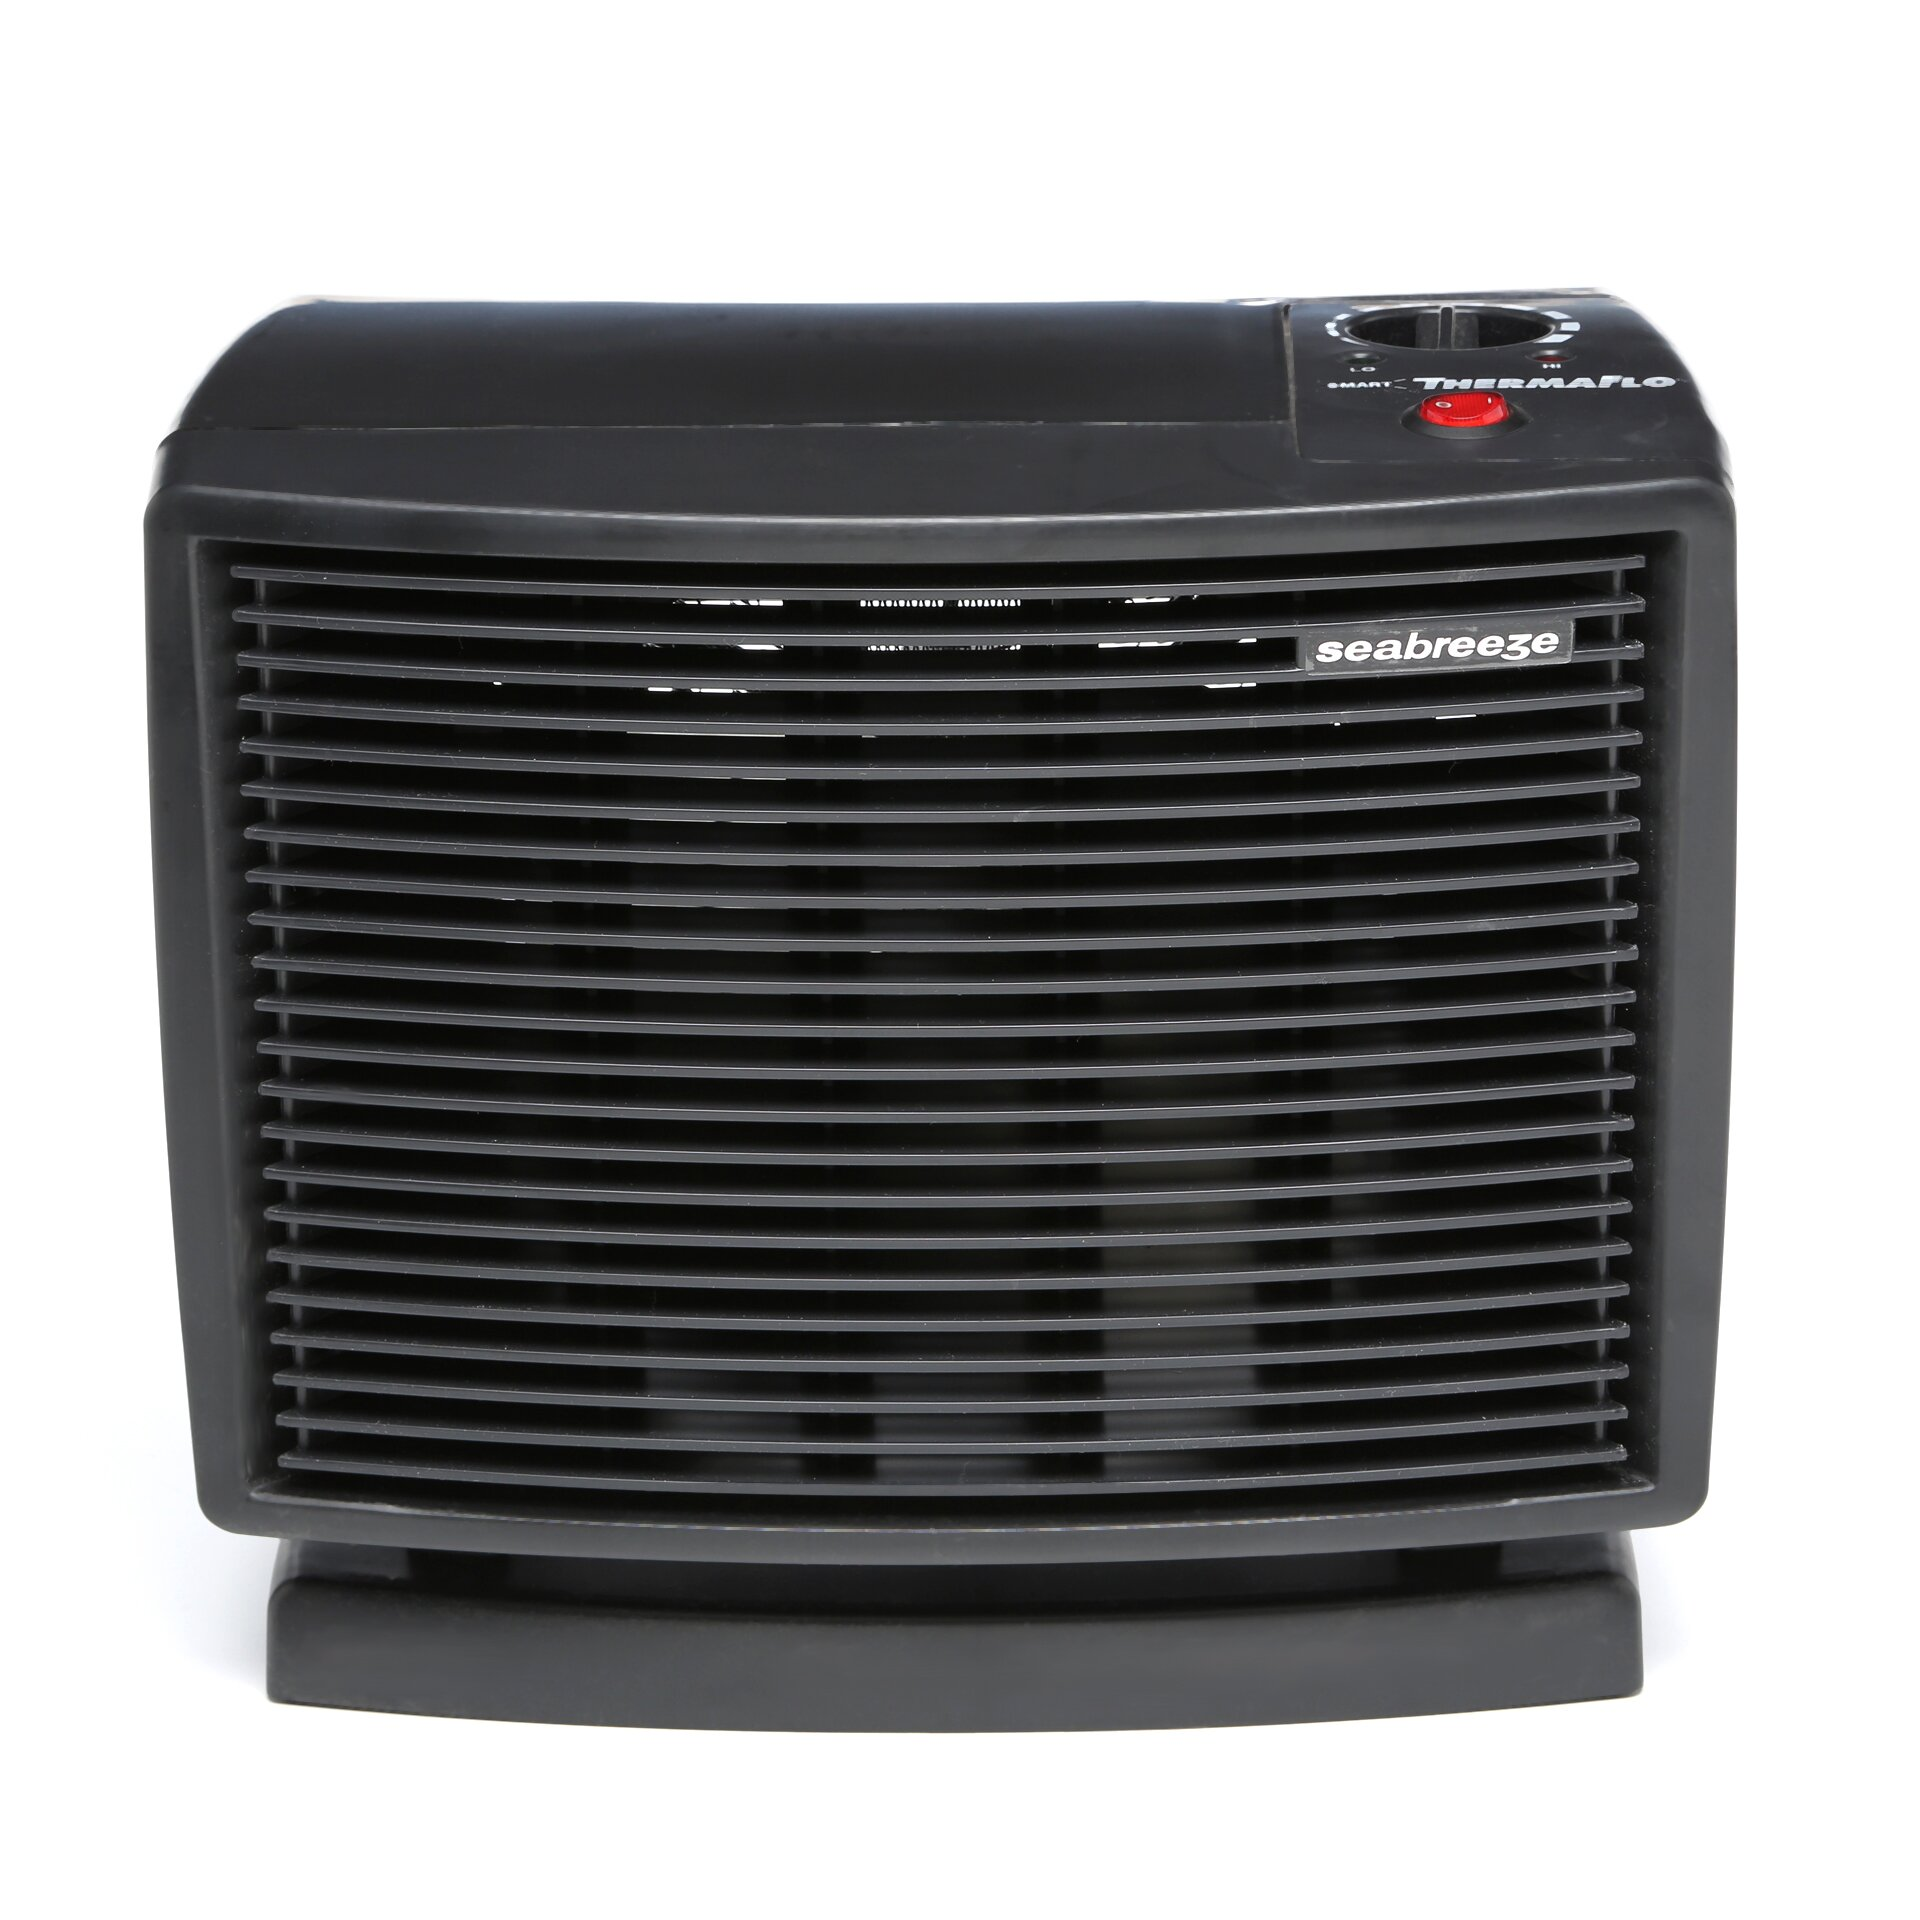 Seabreeze electric thermaflo 5 120 btu portable electric Space heating options